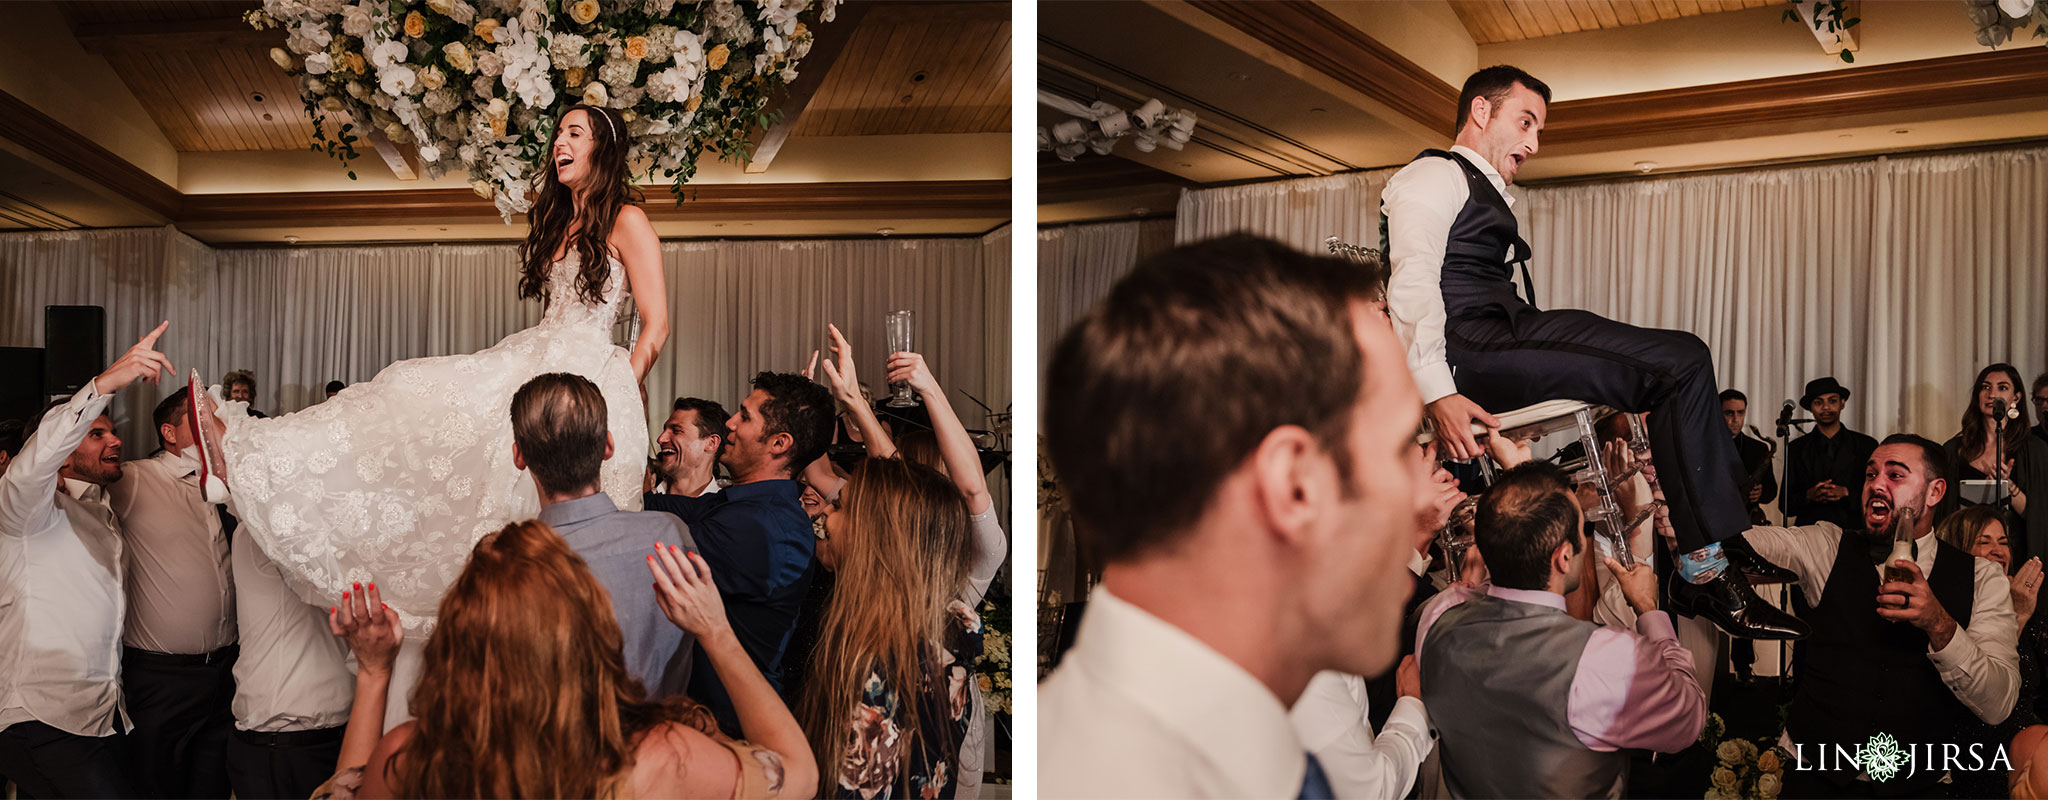 02 pelican hill orange county wedding photography